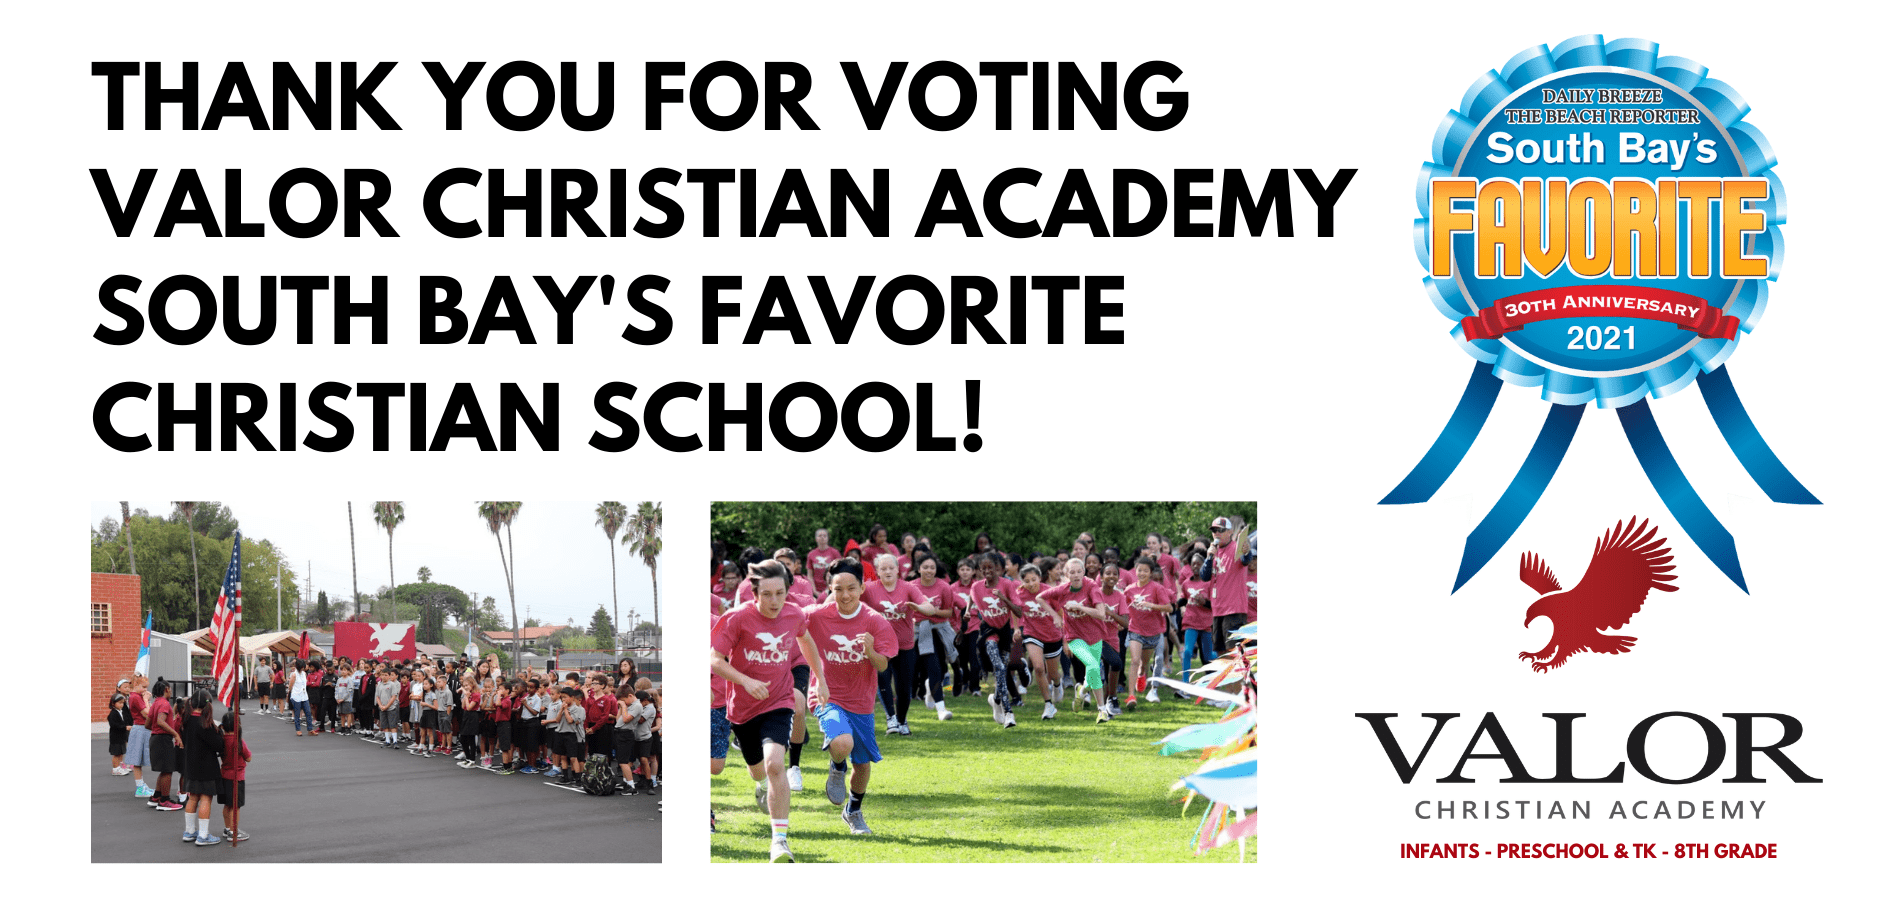 Valor Christian Academy selected as South Bay's Favorite Christian School 2021